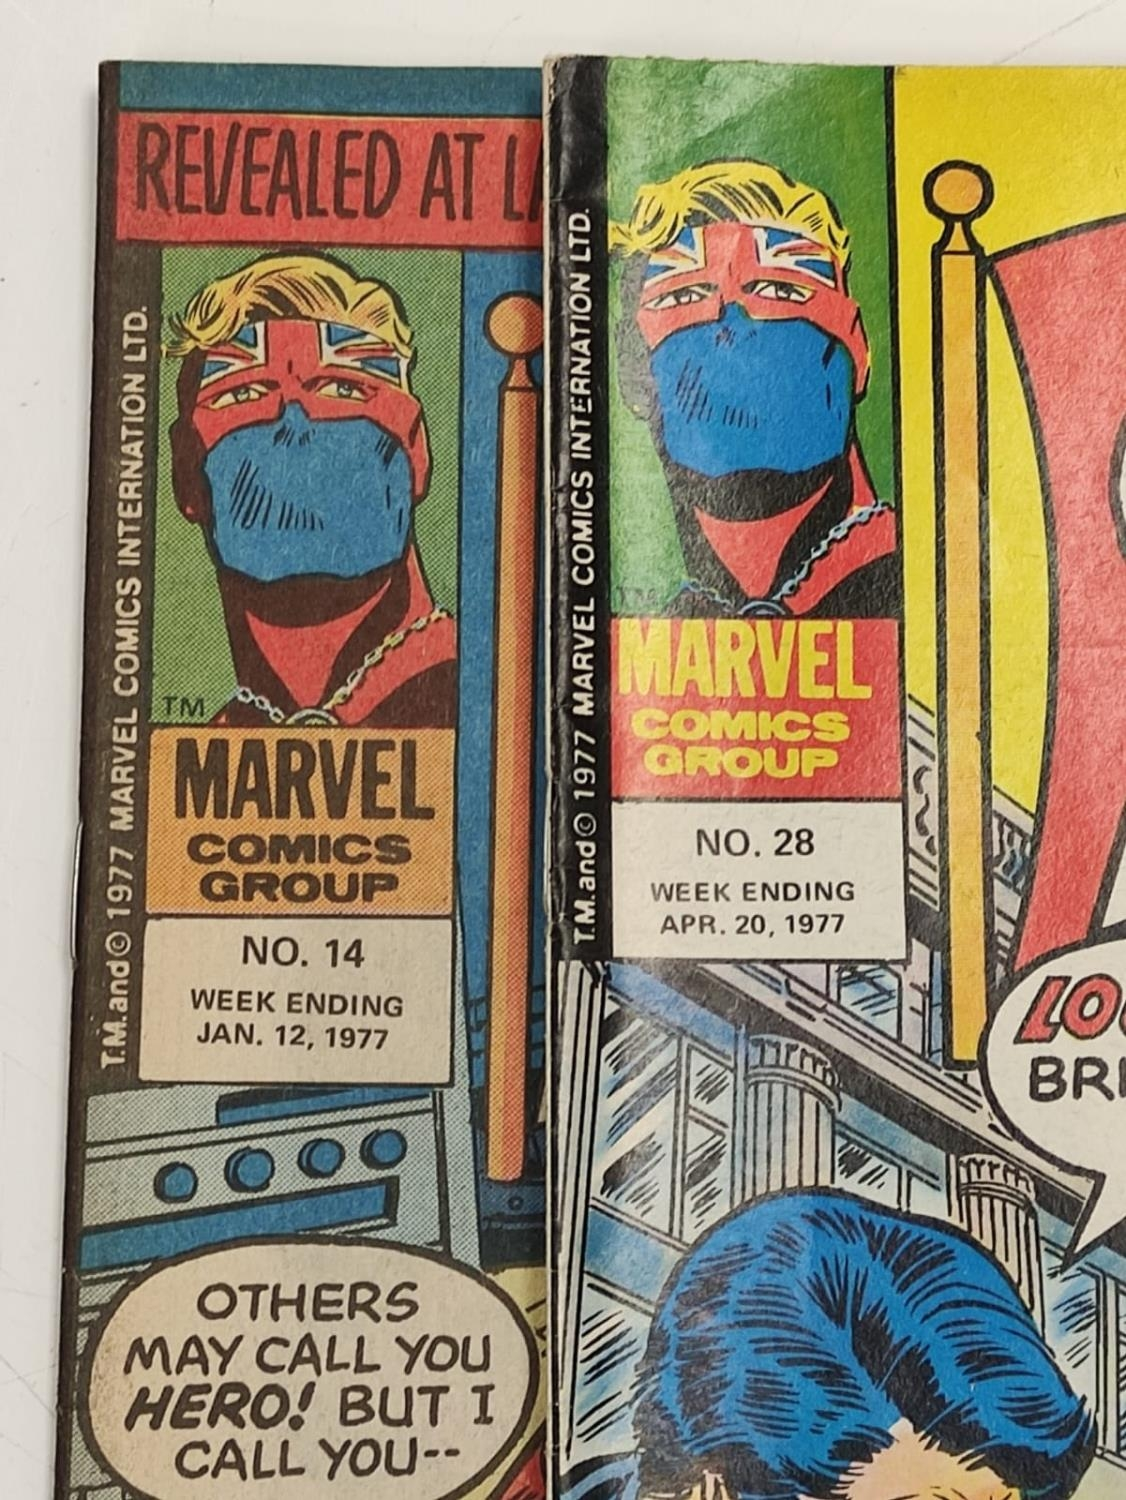 20 editions of mixed Vintage Marvel Comics. - Image 13 of 56